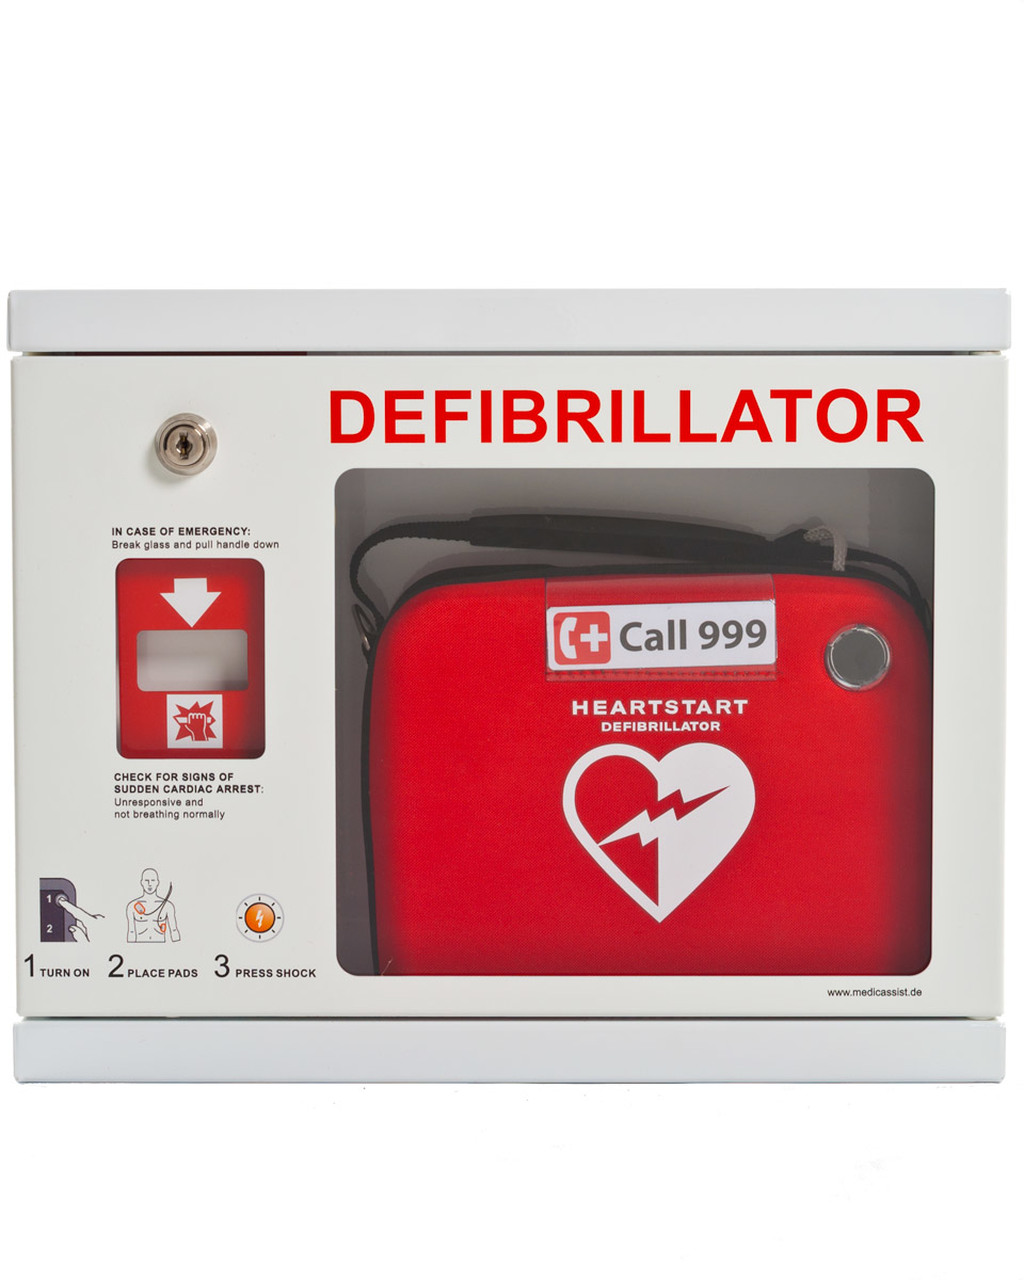 What is Defibrillator?